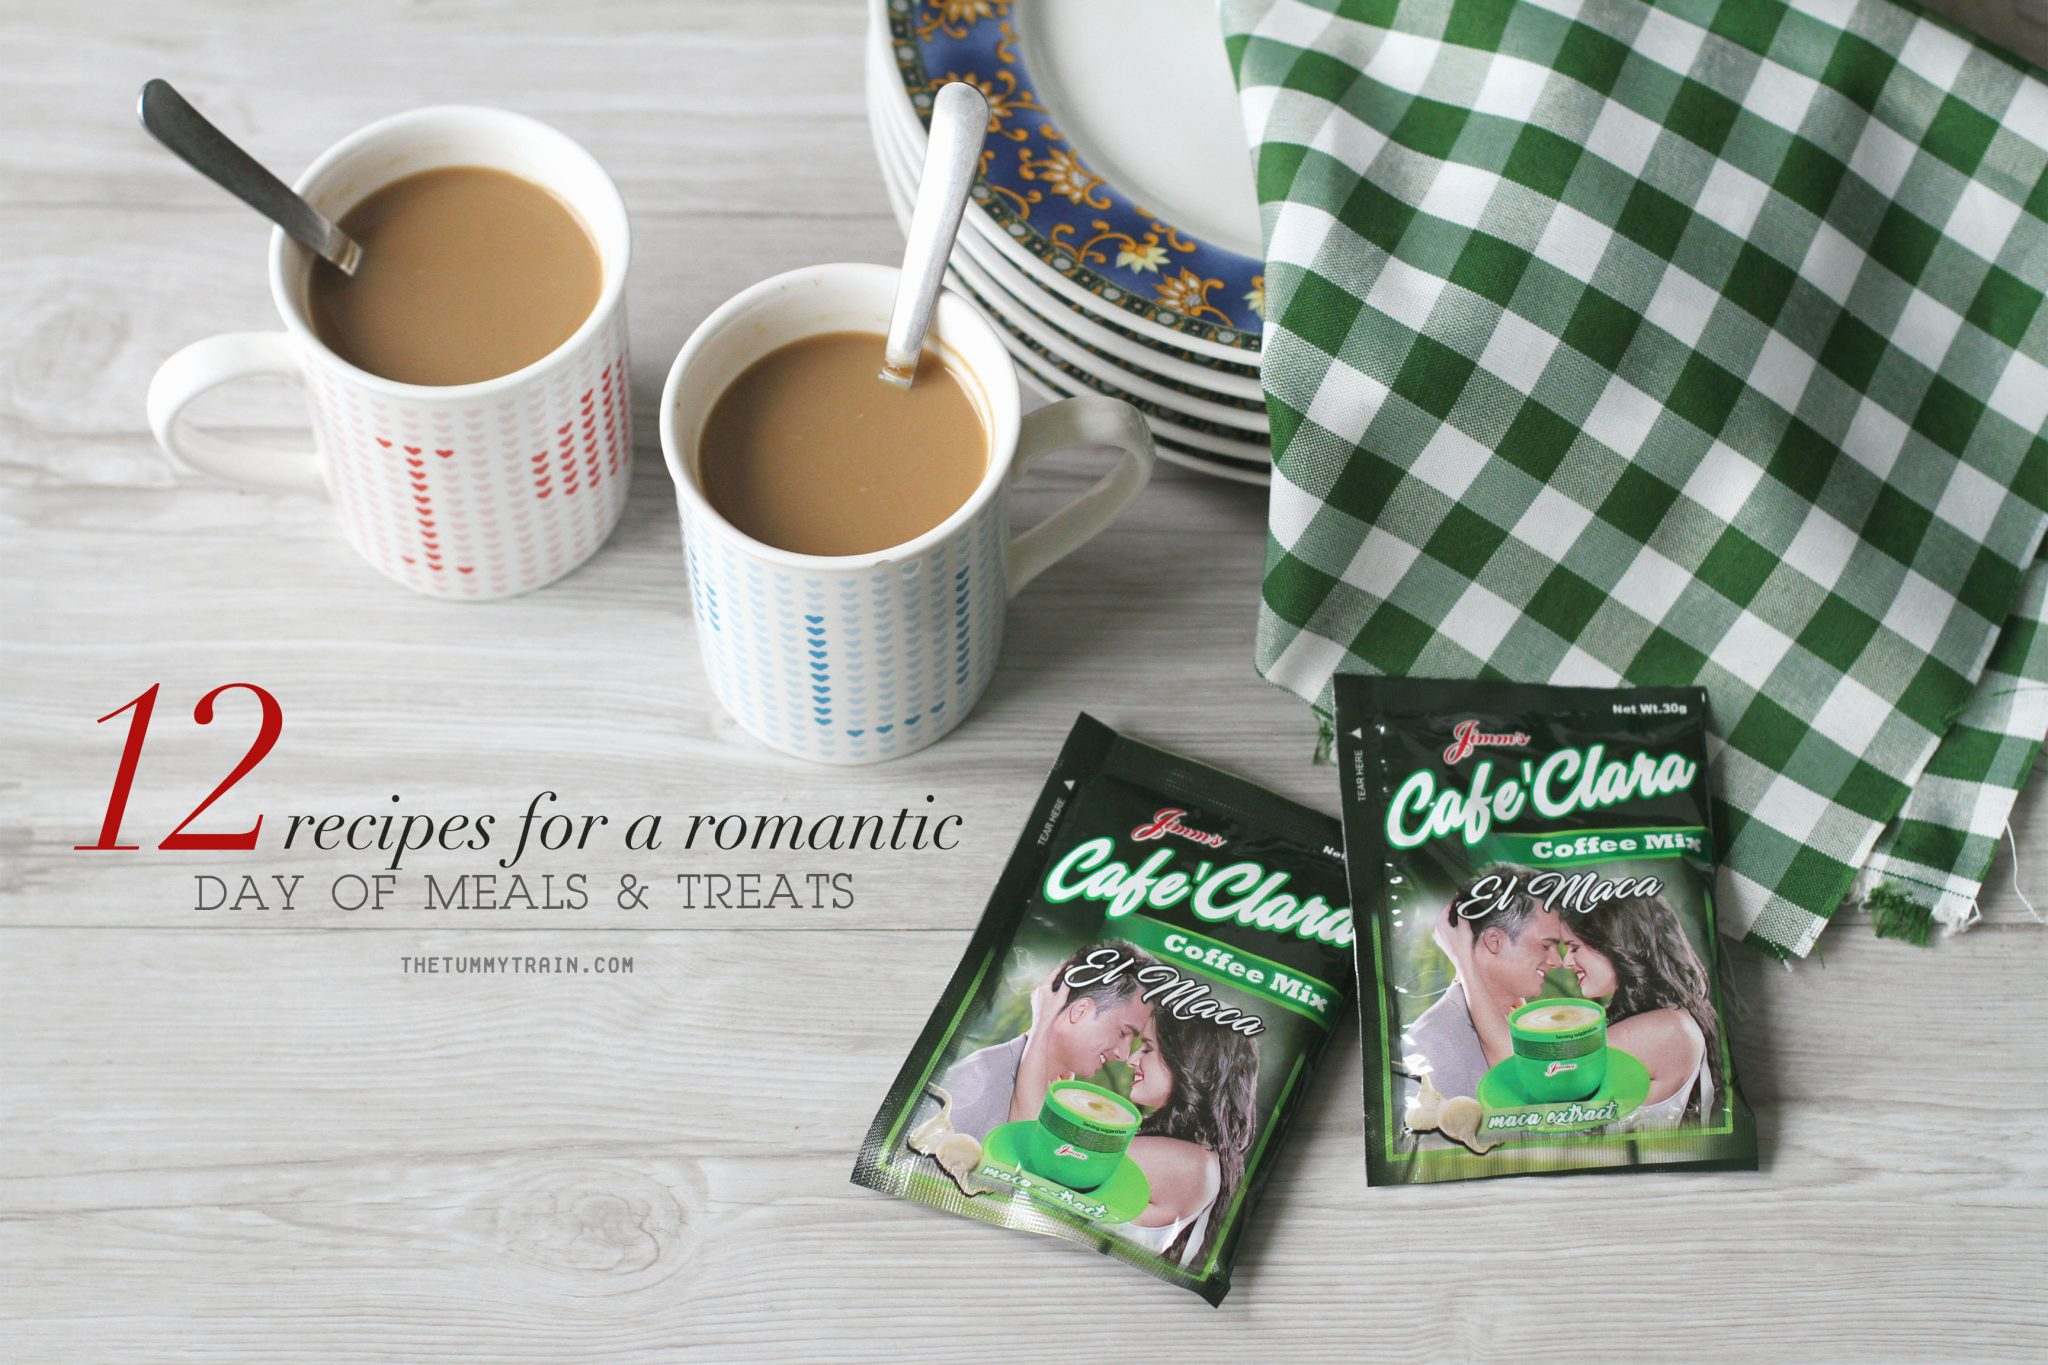 36338704710 5720c25e03 o - Romantic times with home-cooked meals and Jimm's Cafe Clara